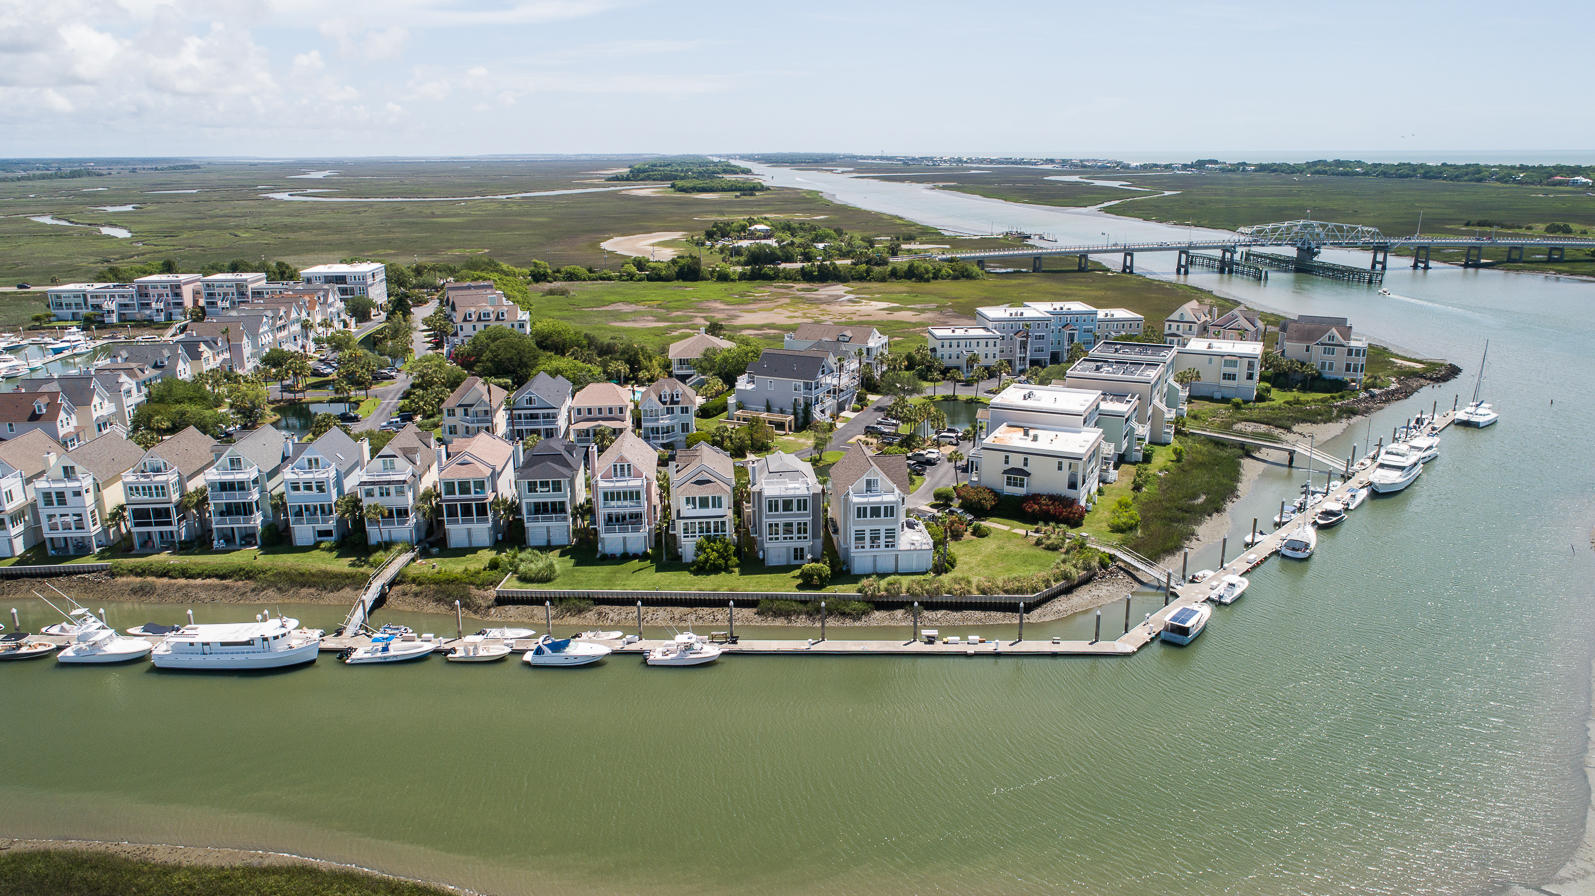 Tolers Cove Homes For Sale - B-4 & B-5 Tolers Cove Marina 70ft + Home, Mount Pleasant, SC - 49